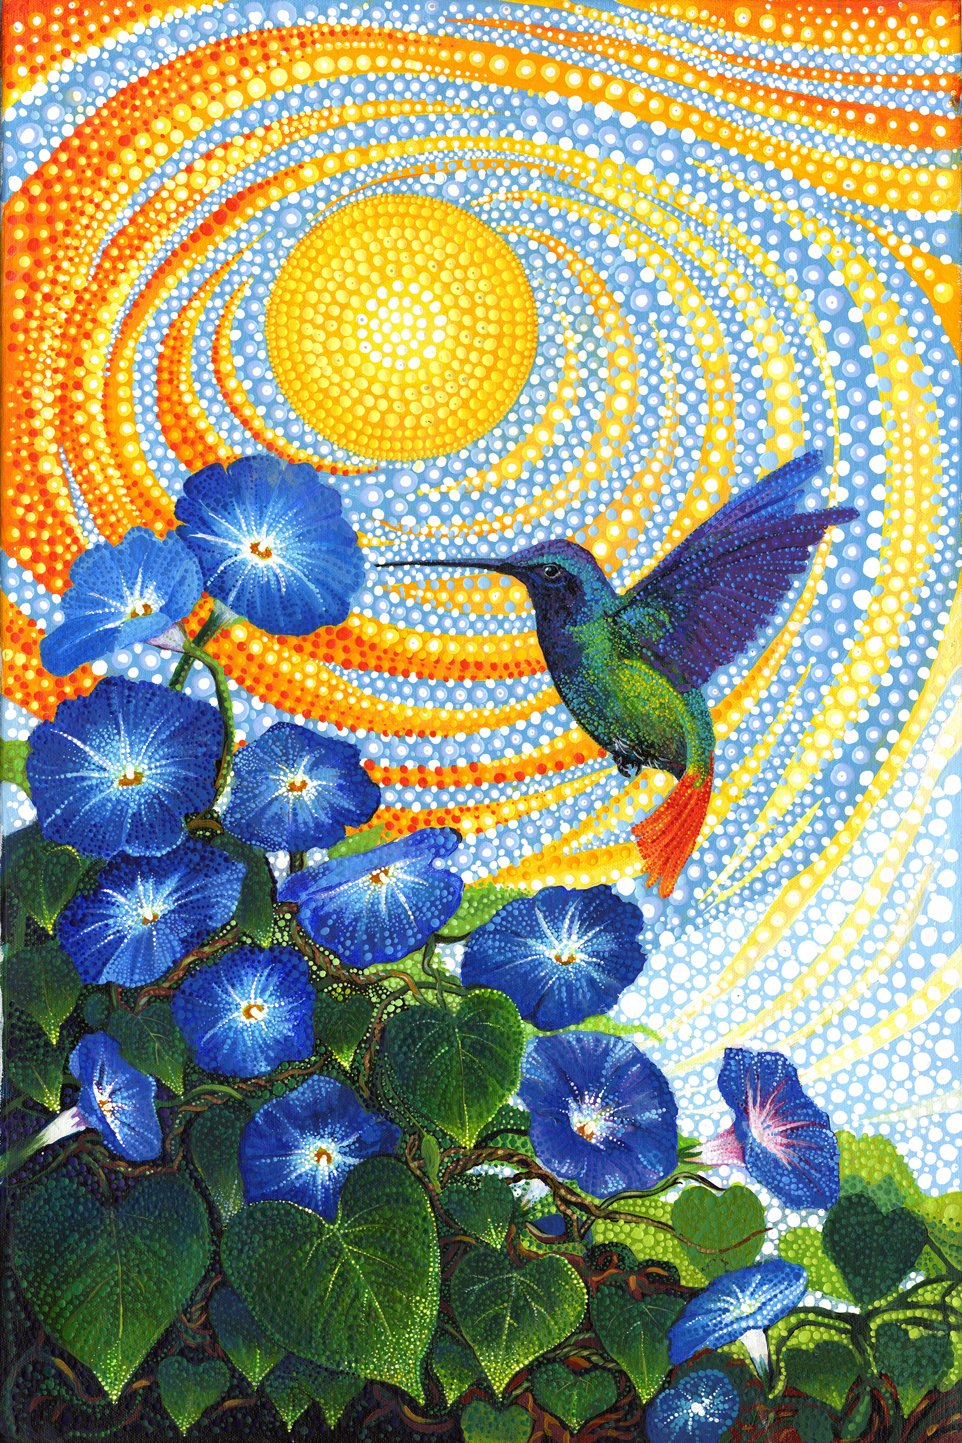 Moda - Dreamscapes-Morning Glory Panel - 51241 11D - N-23